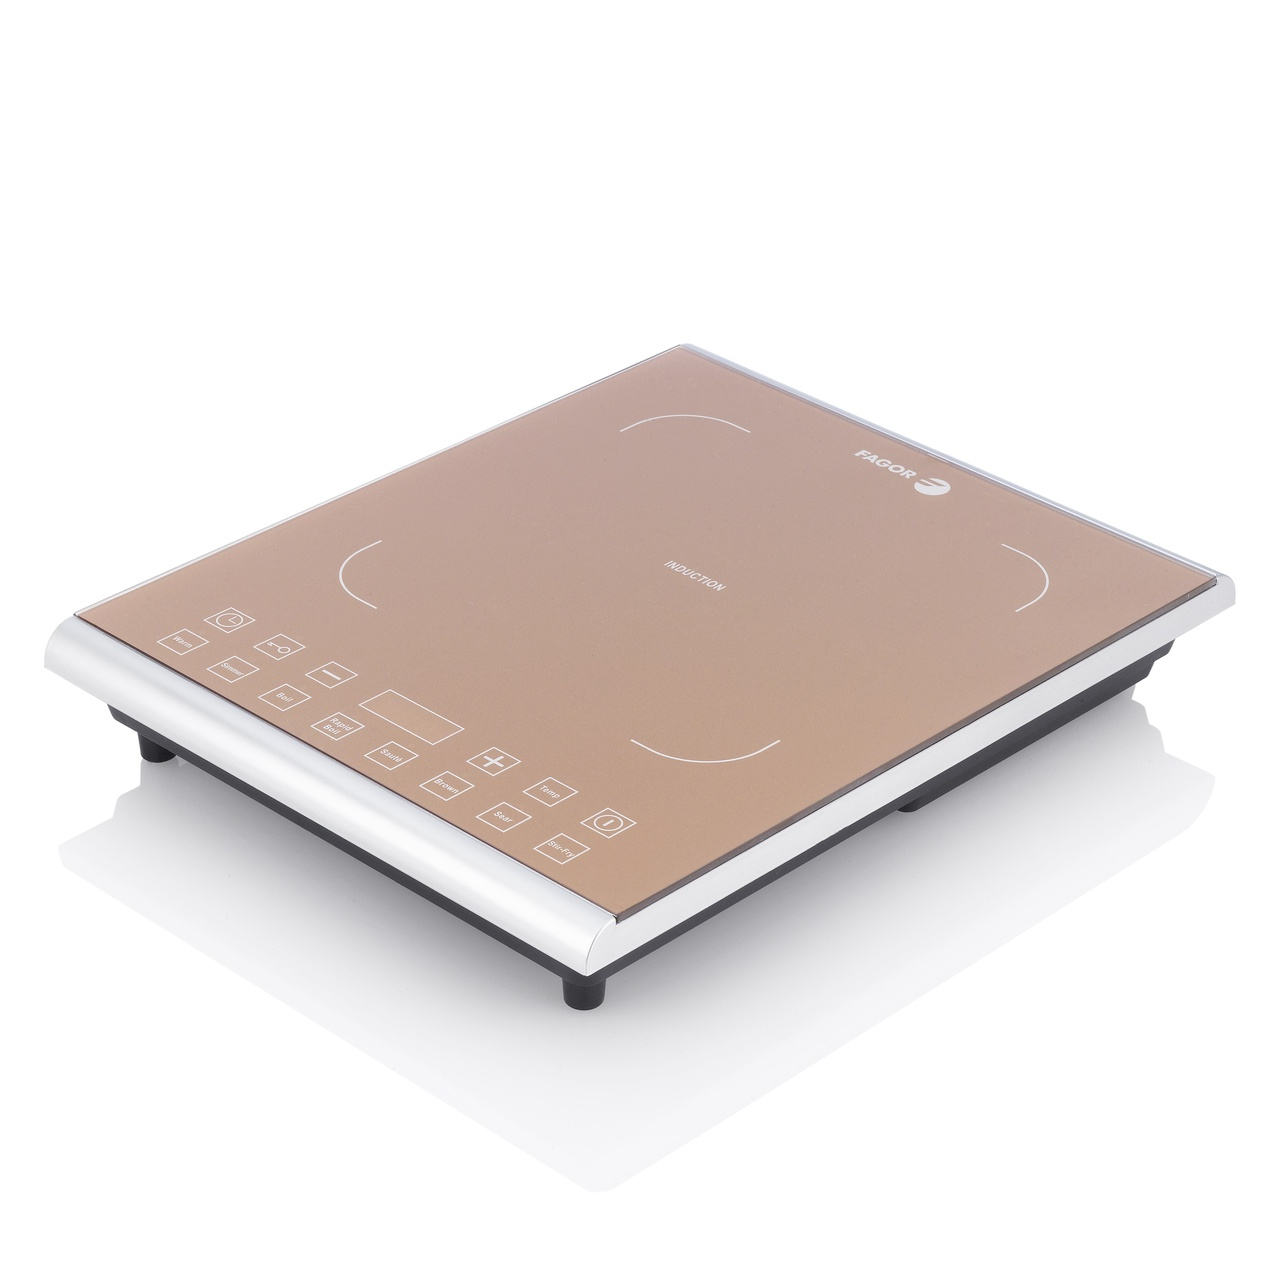 PRO PORTABLE INDUCTION COOKTOP